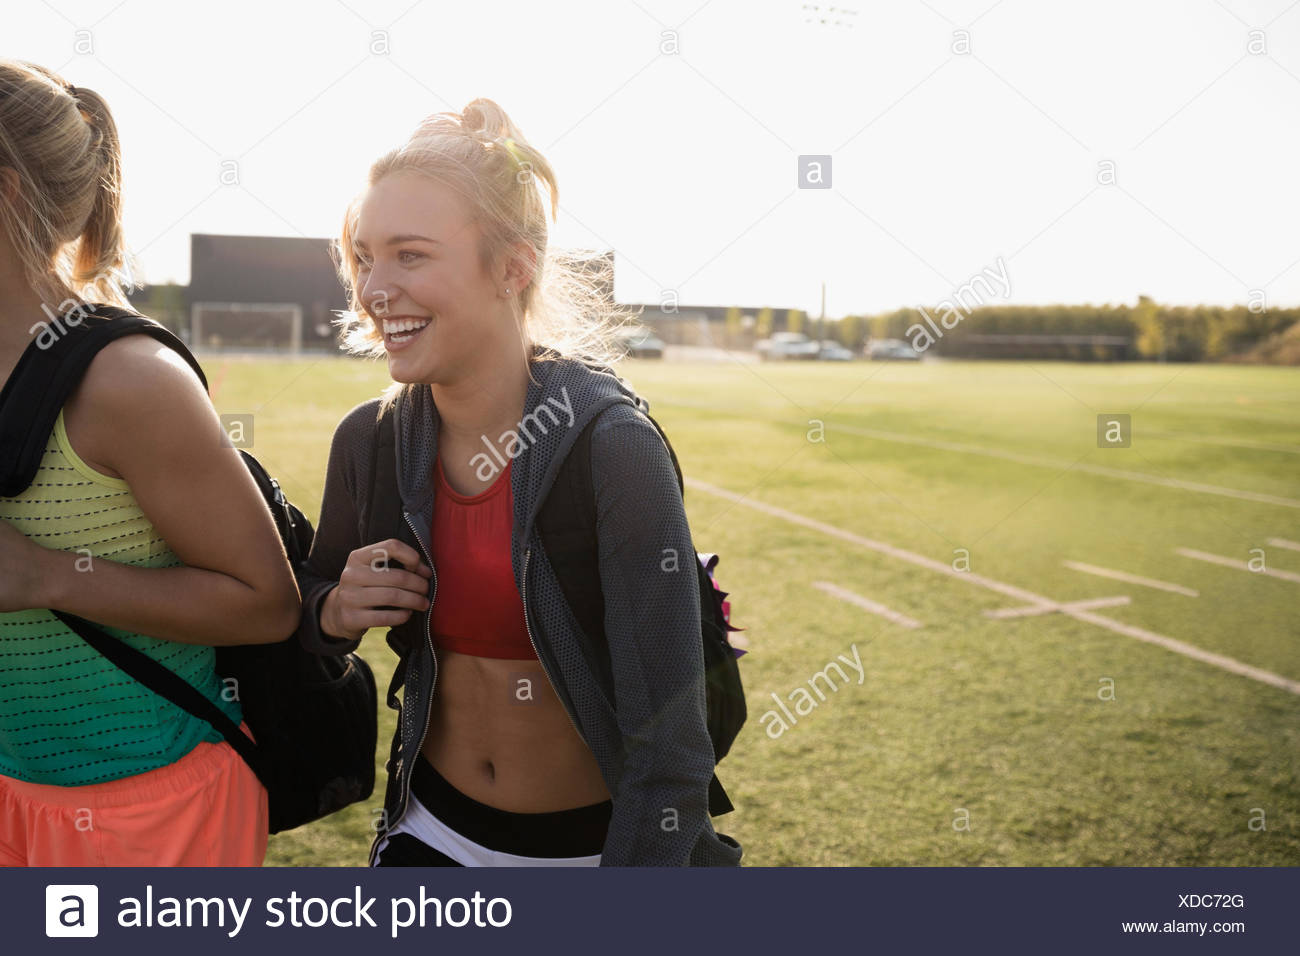 Smiling teenage girl high school cheerleader walking on sunny football field - Stock Image